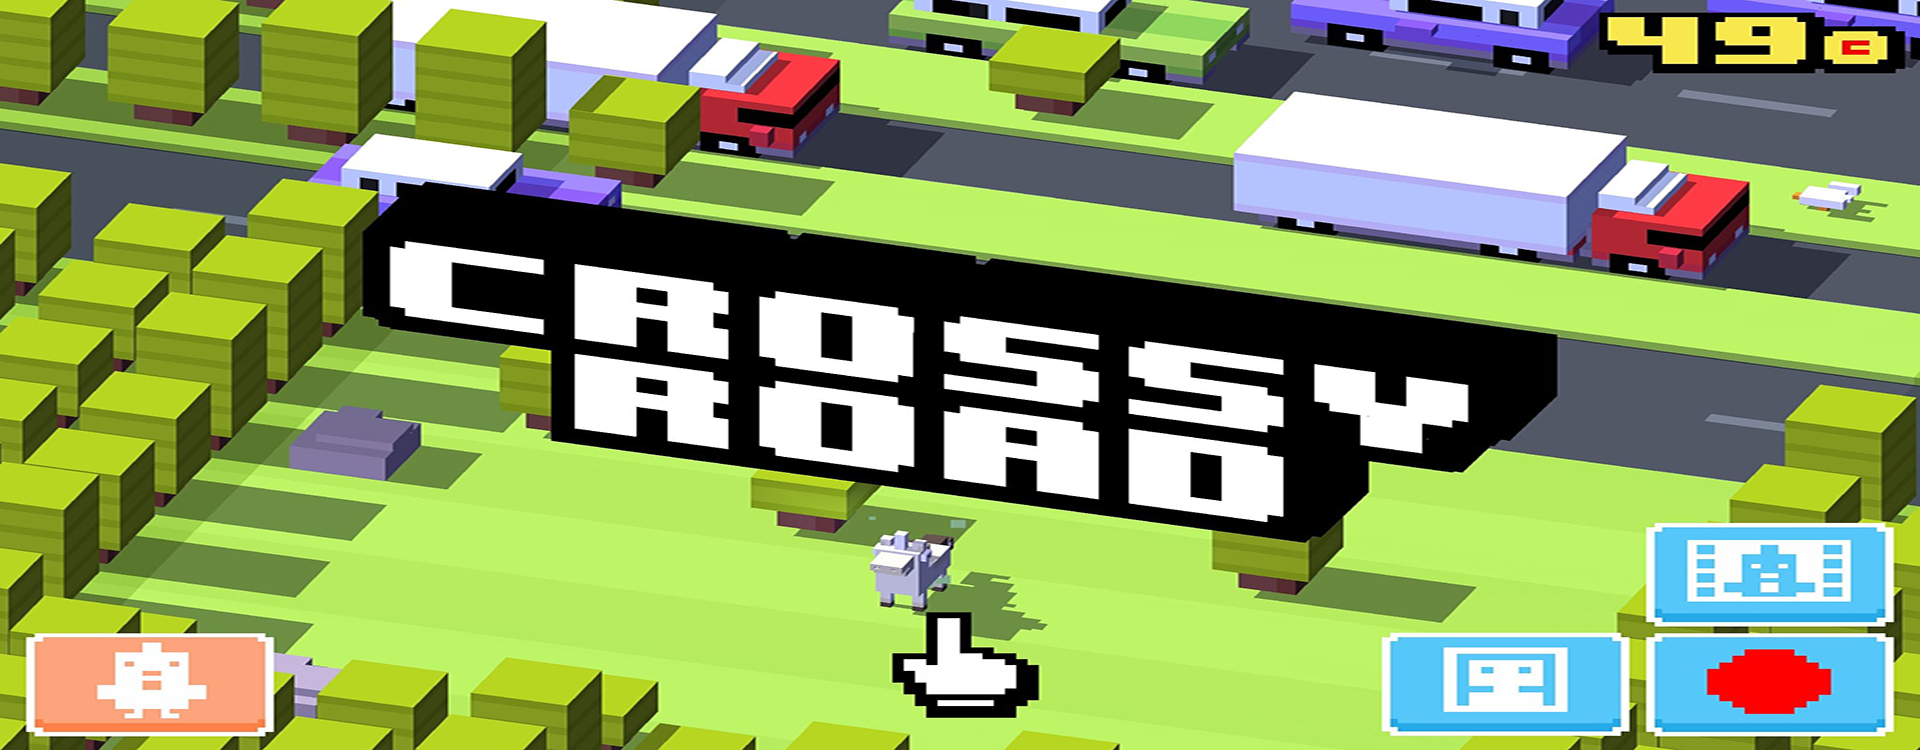 Crossy Road Unity Connect - crossy road coloring pages